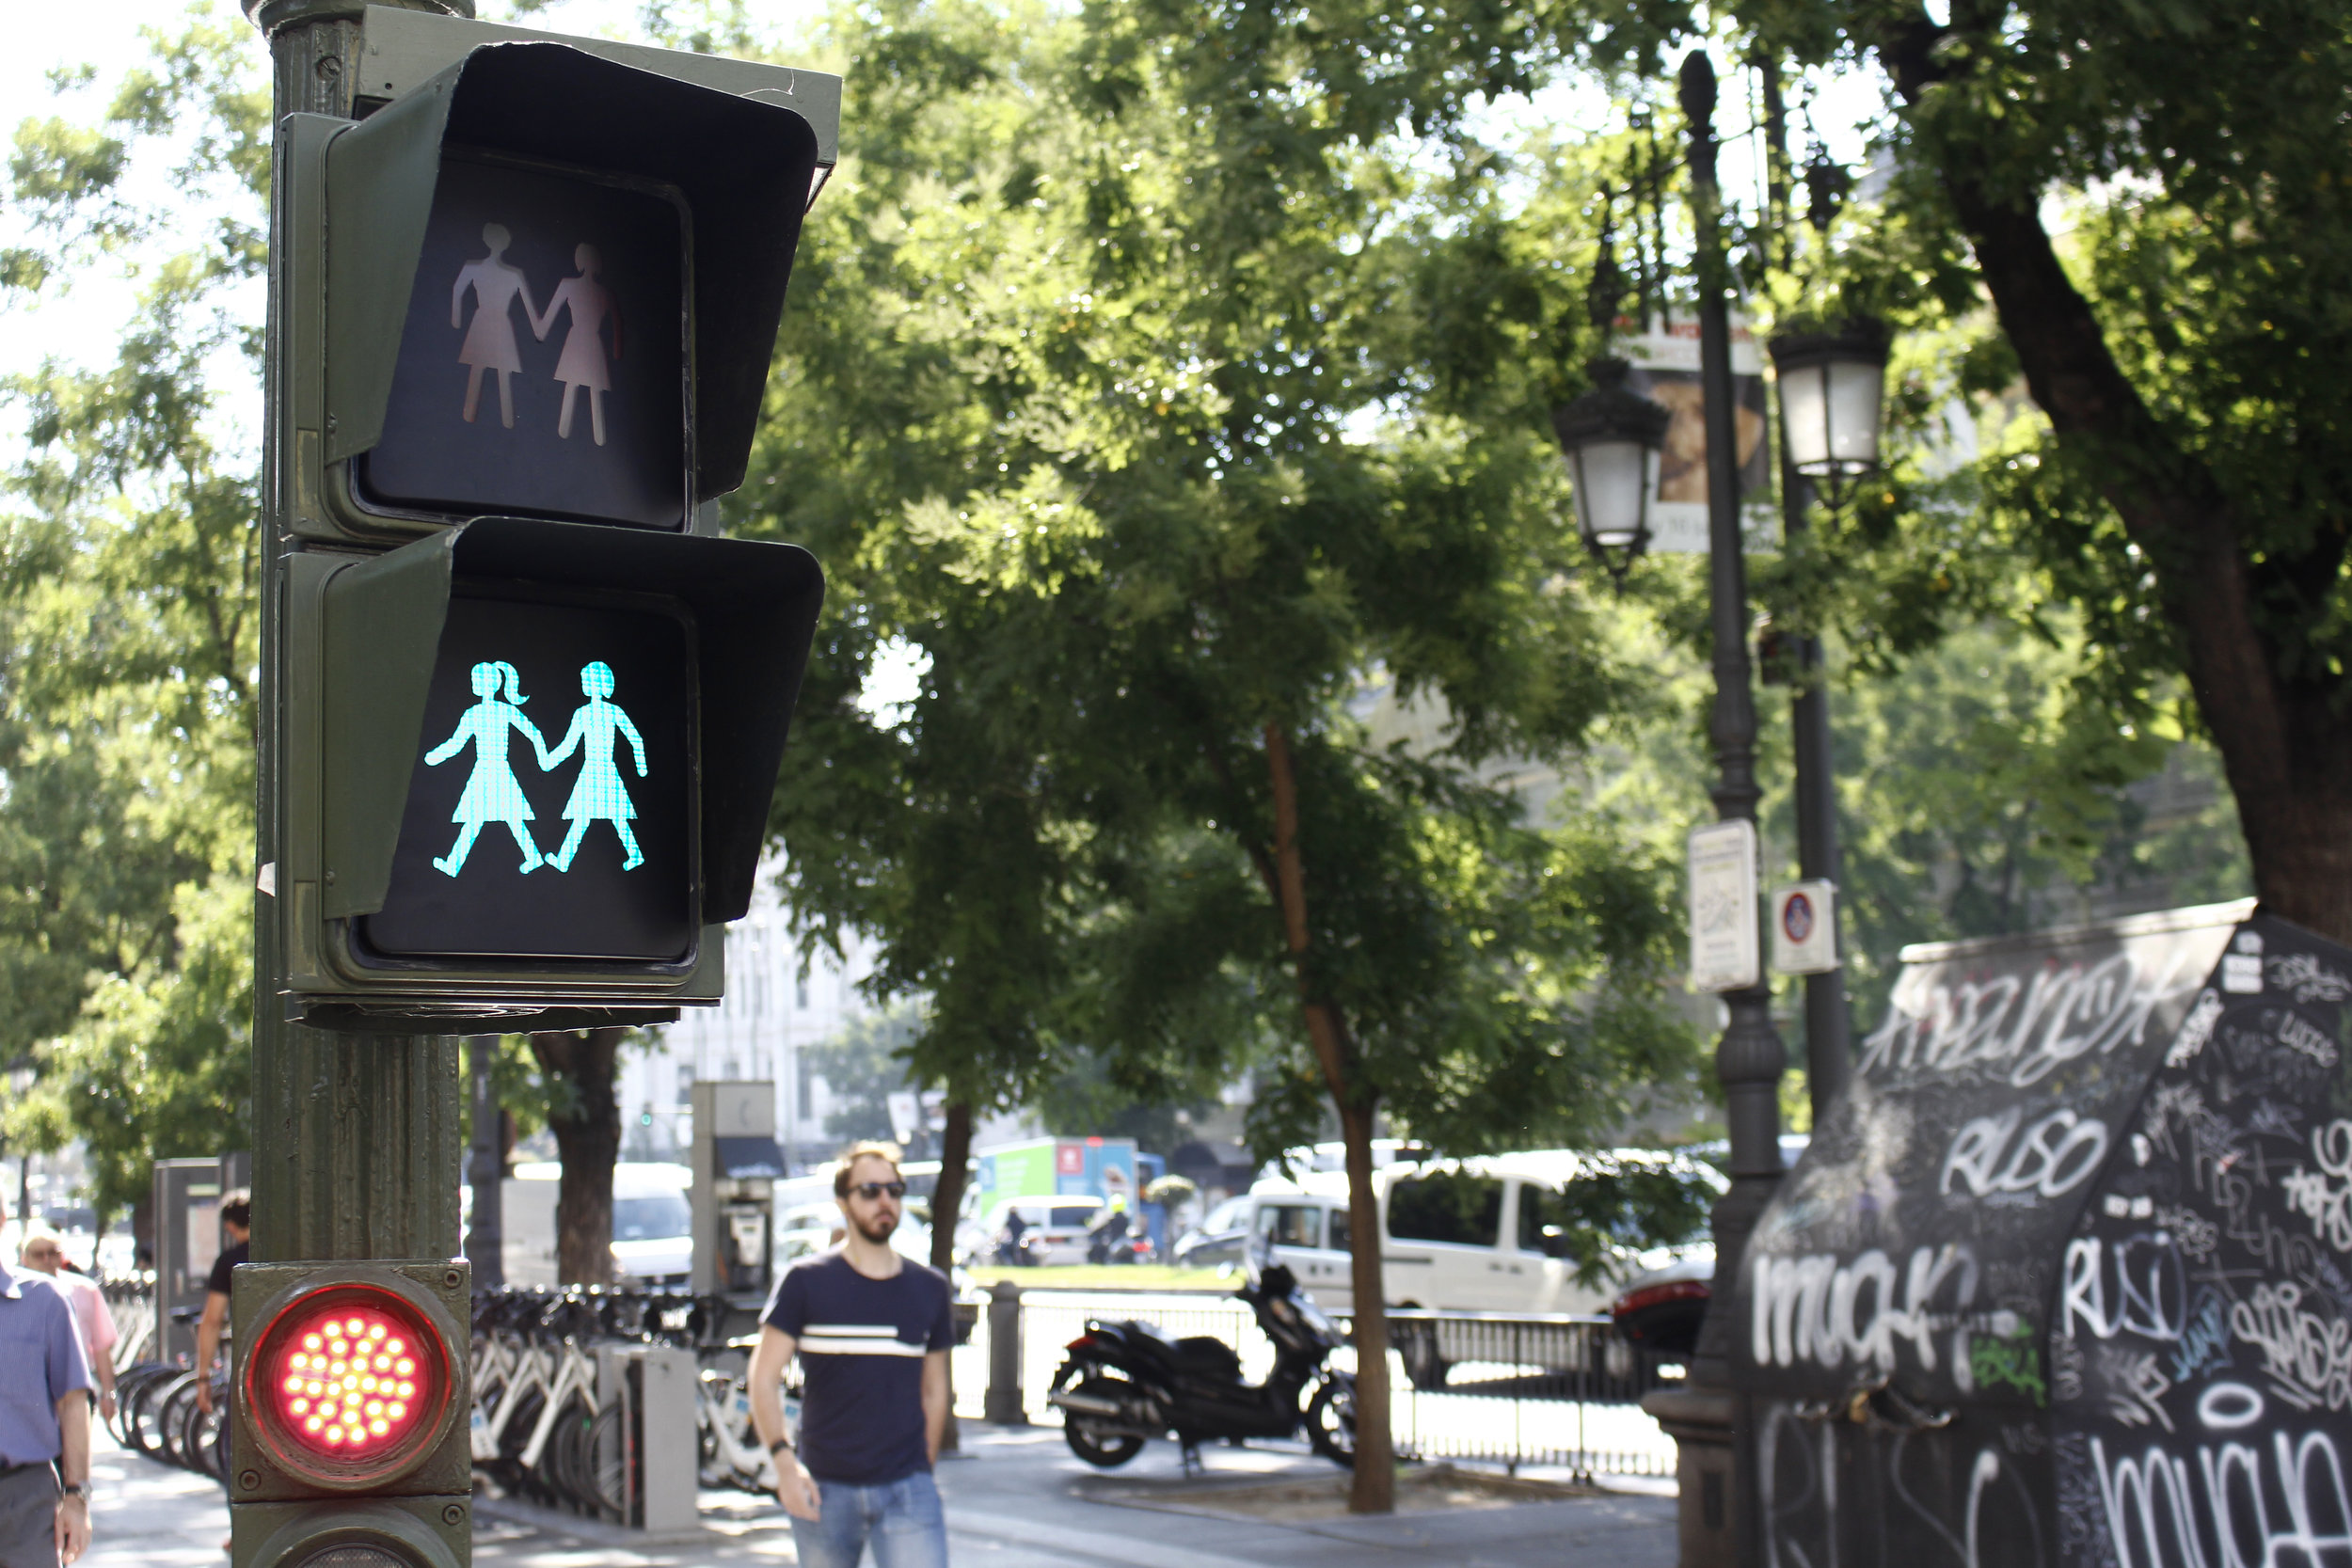 OUT: Madrid Installs 'Gay-Friendly' Crosswalk Signs Ahead of WorldPride